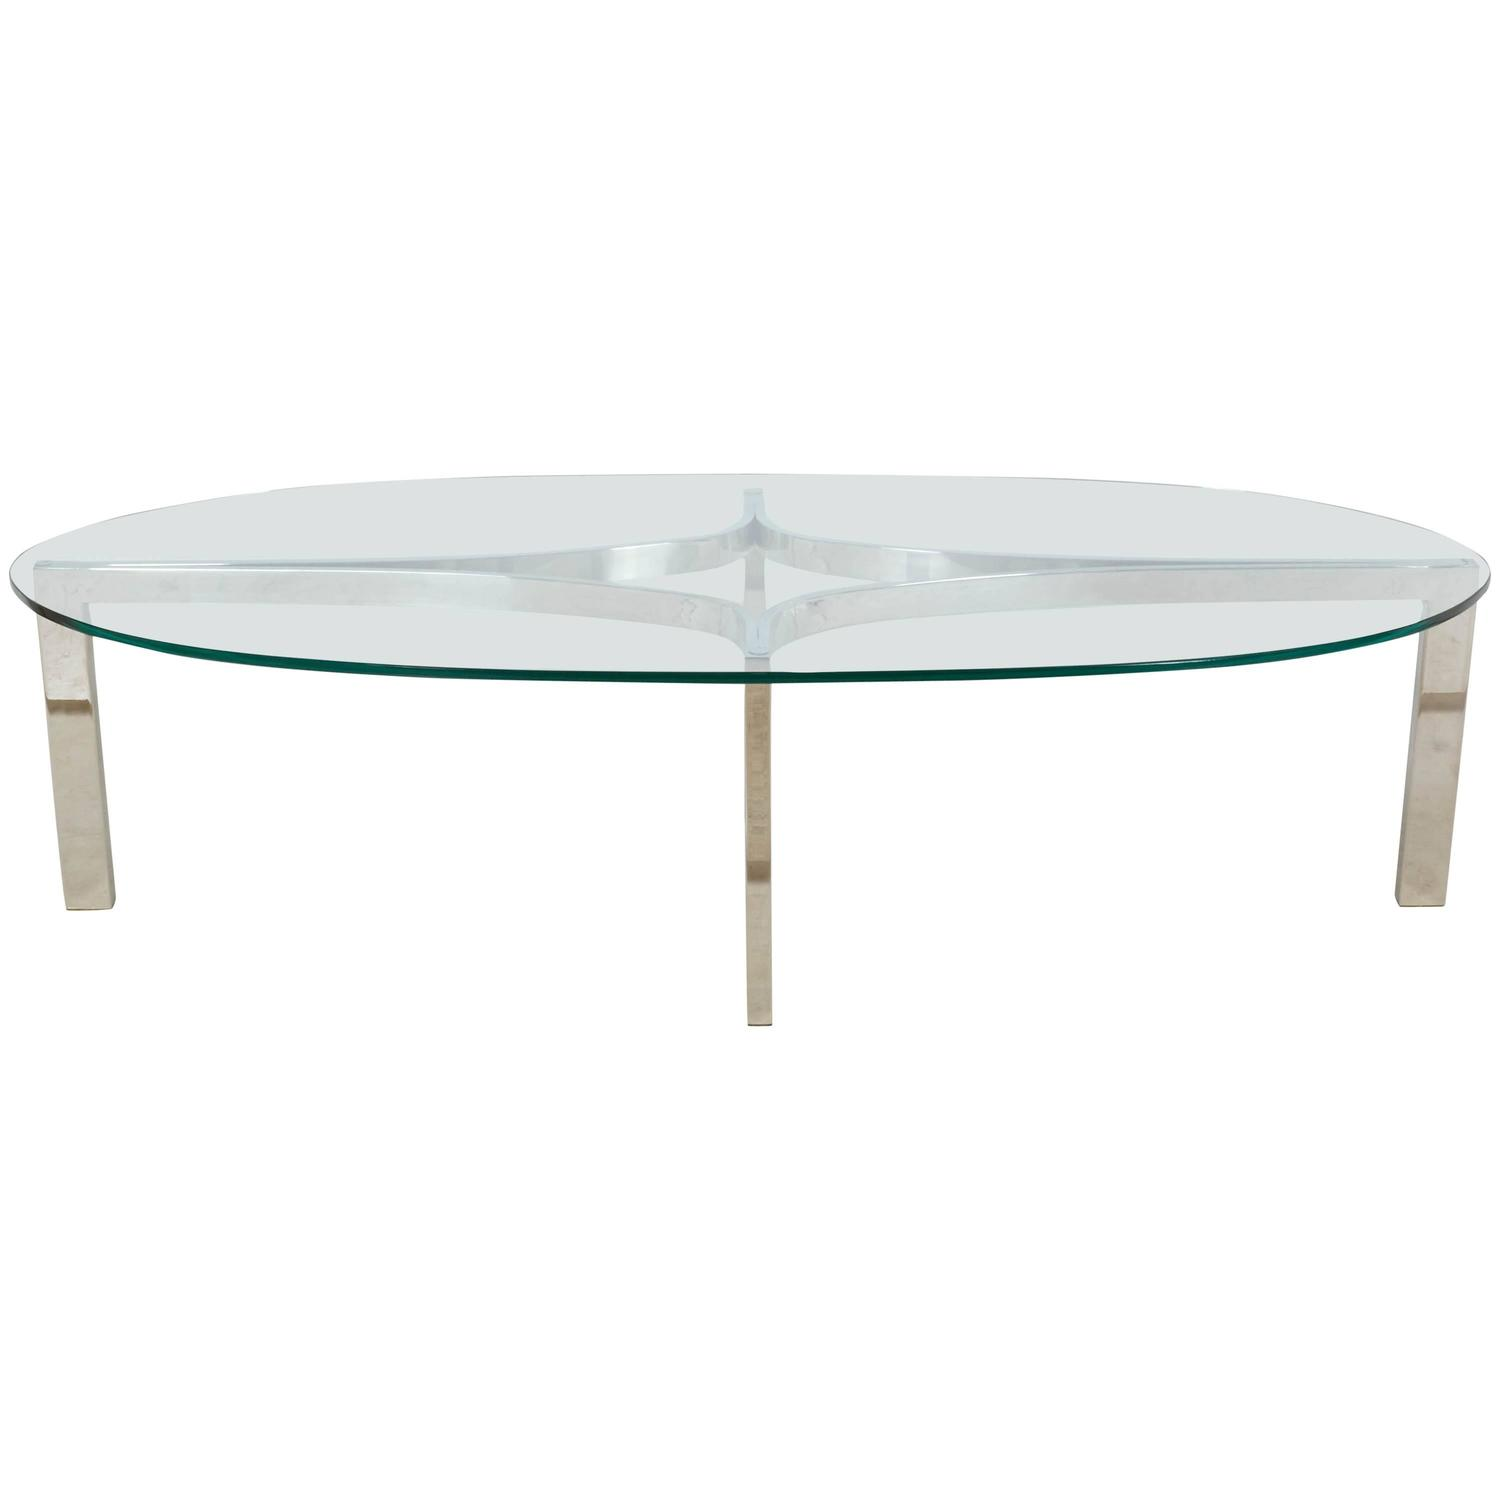 Chrome And Glass Sculptural Oval Coffee Table At 1stdibs